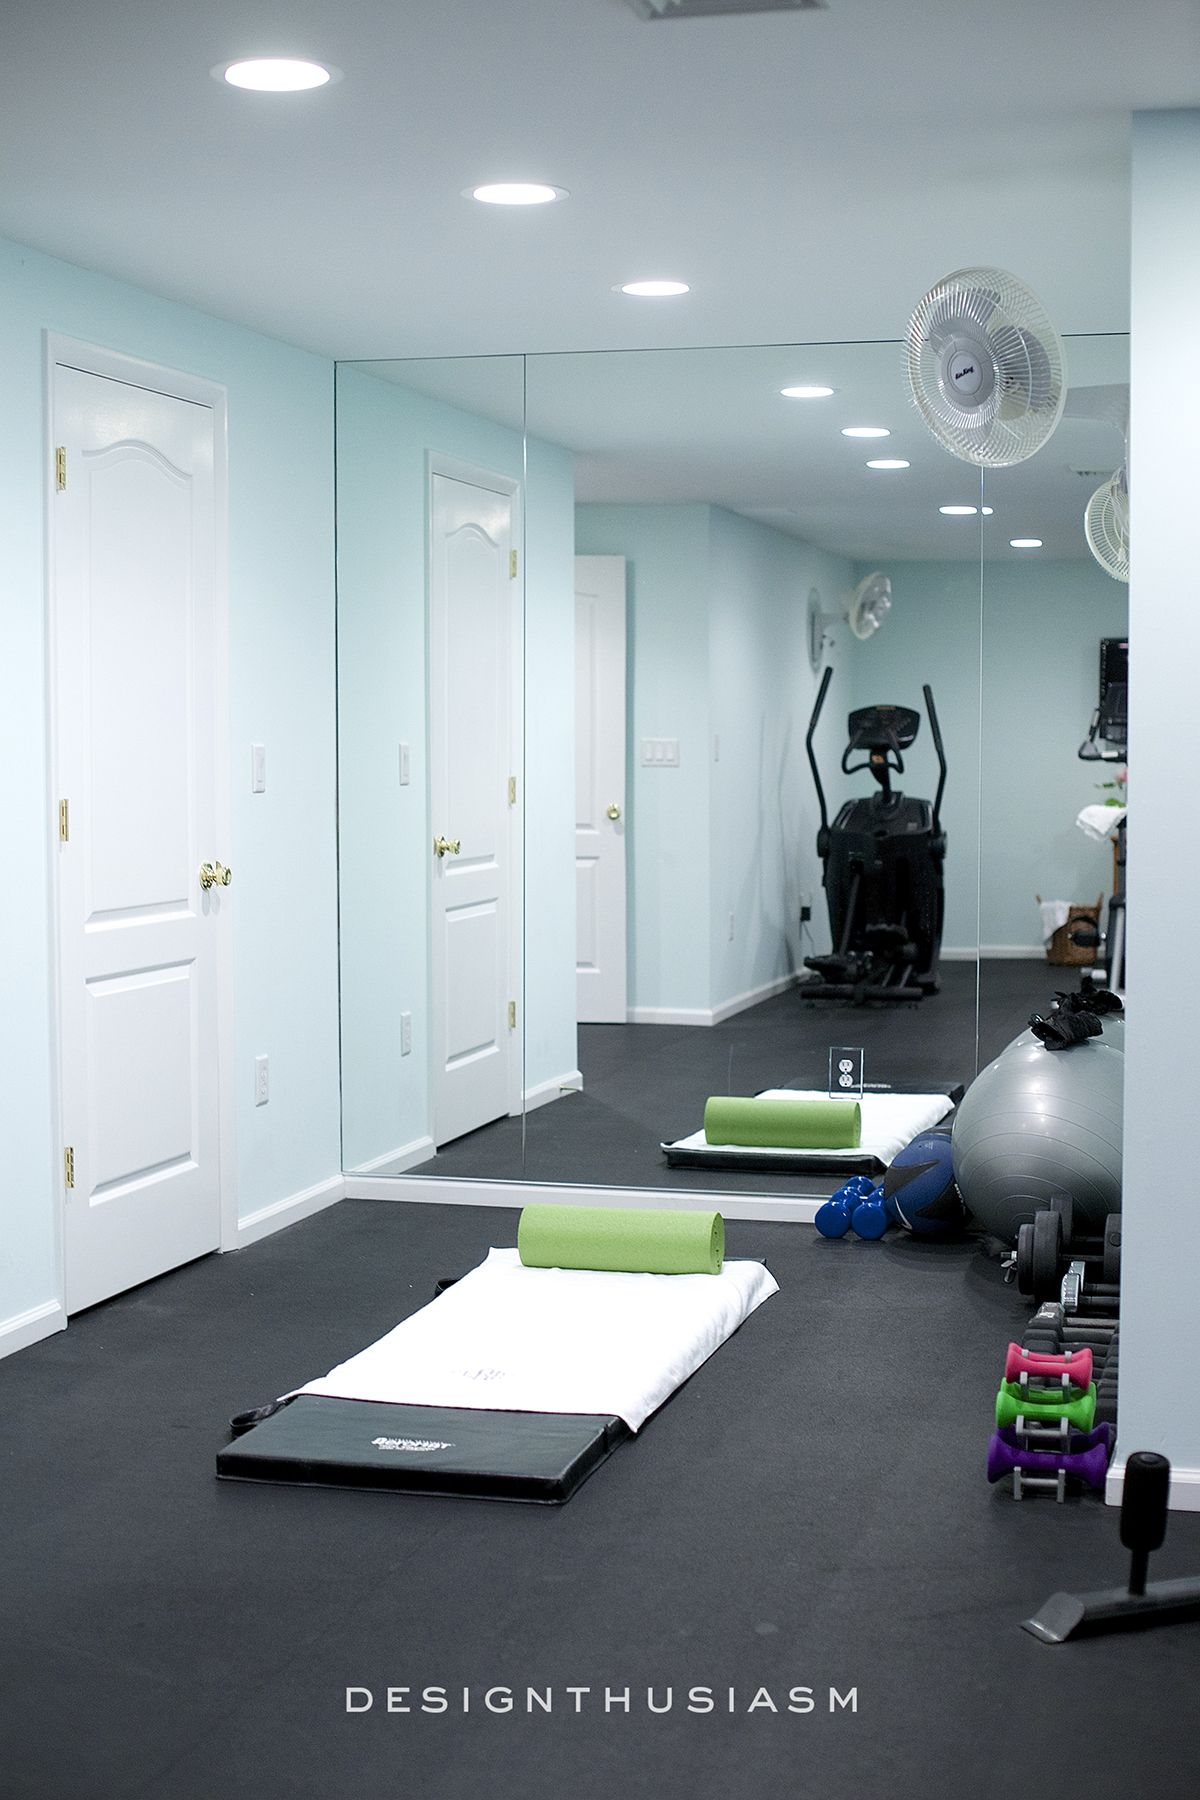 10 ways to add style and function to your home gym design designthusiasm com